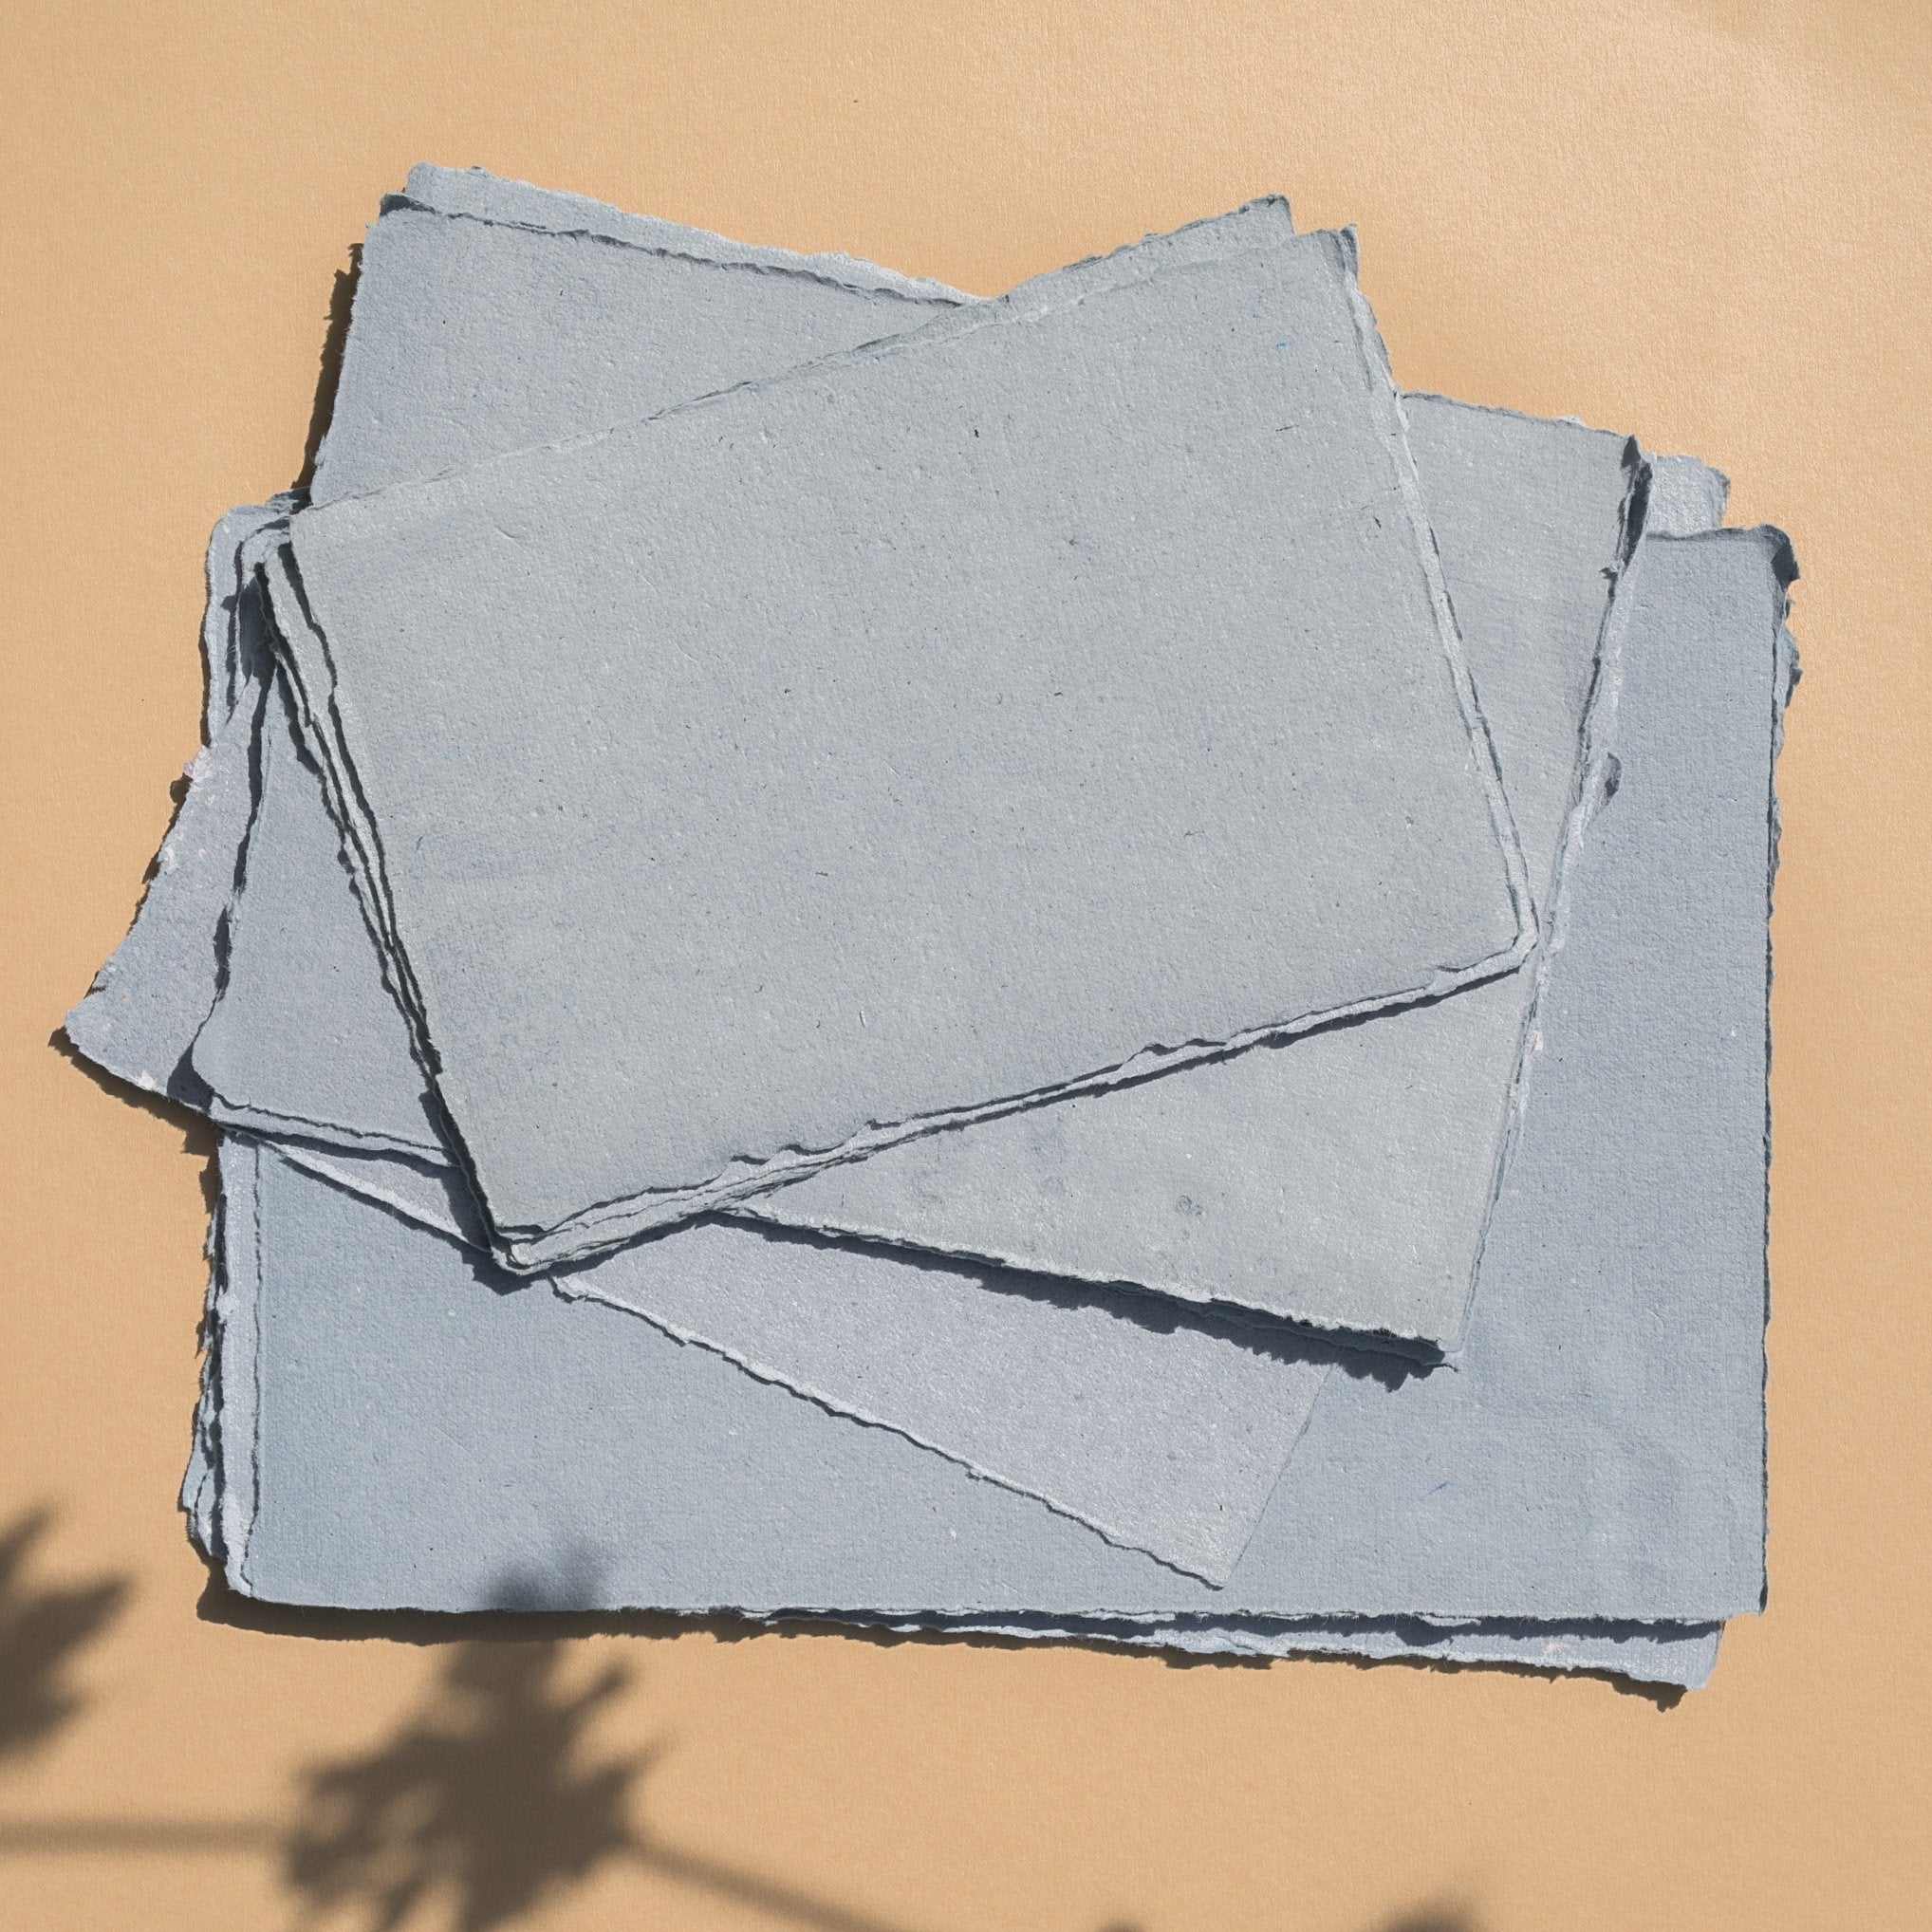 Dusty Blue handmade recycled paper - Feathers and Stone